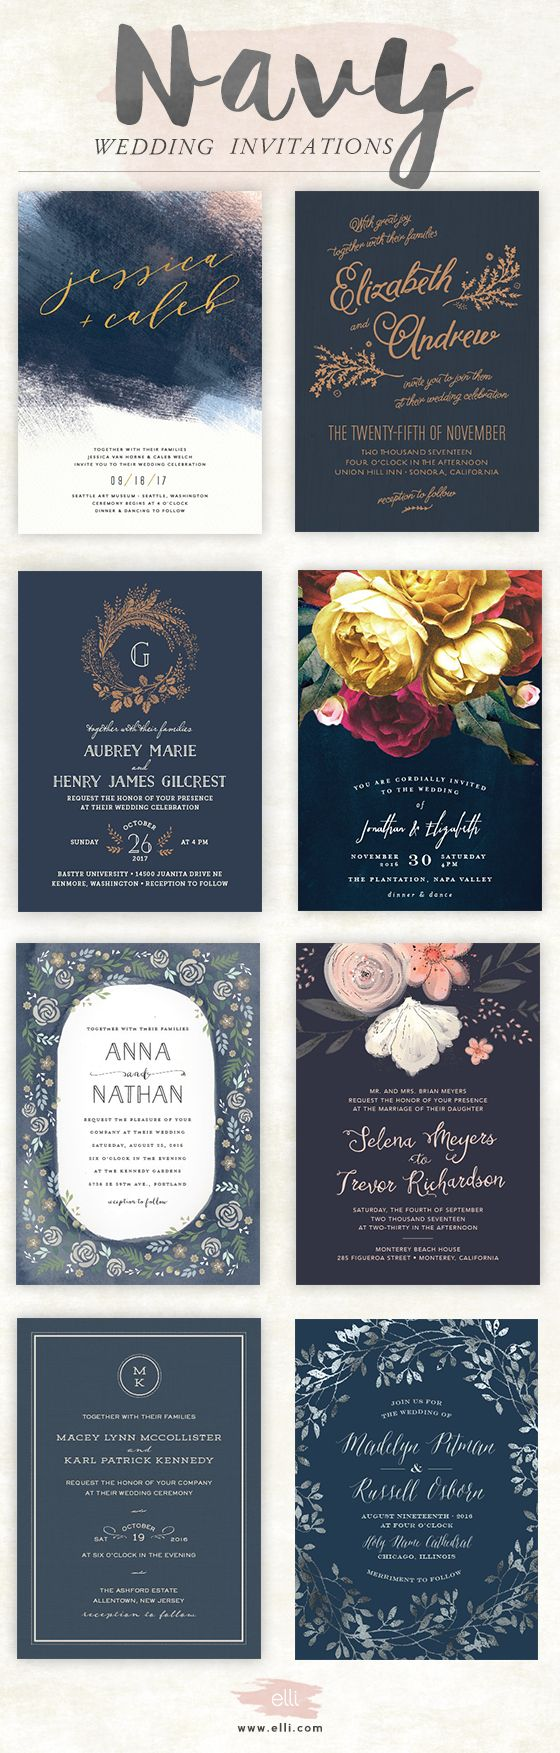 paper style wedding invitations%0A Now trending  navy wedding invitations from Elli com